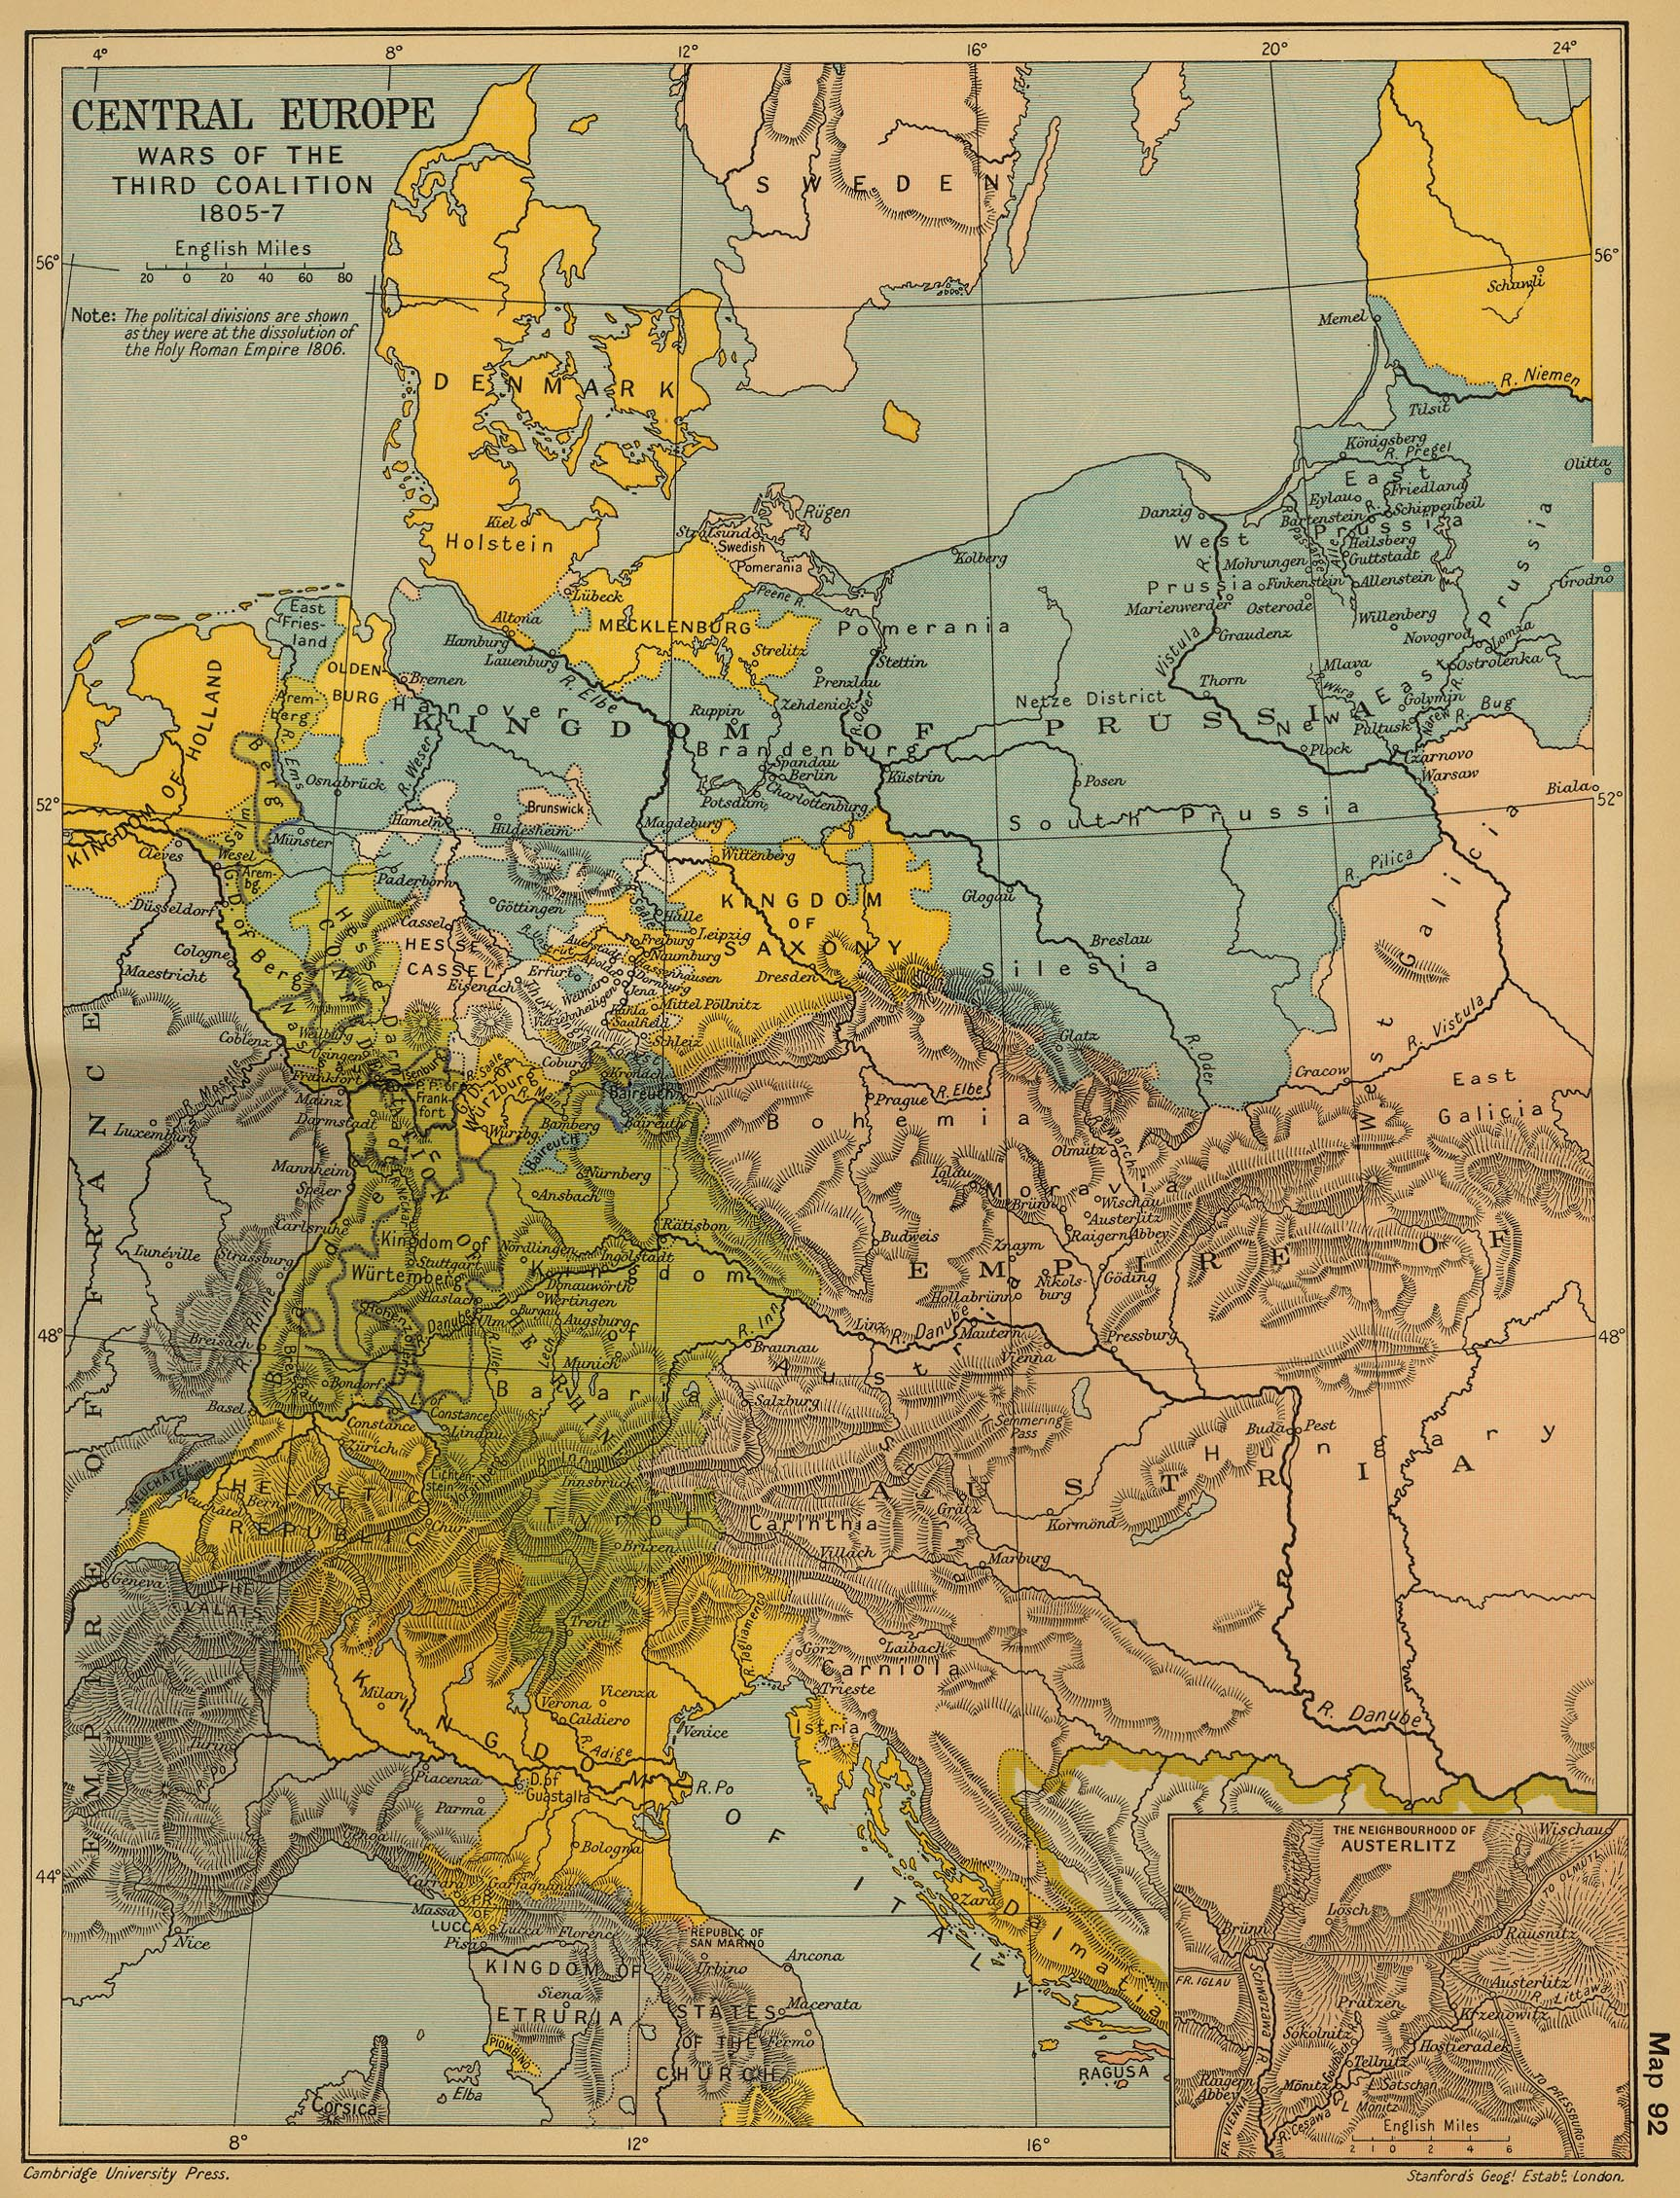 Map of Central Europe 1805-1807